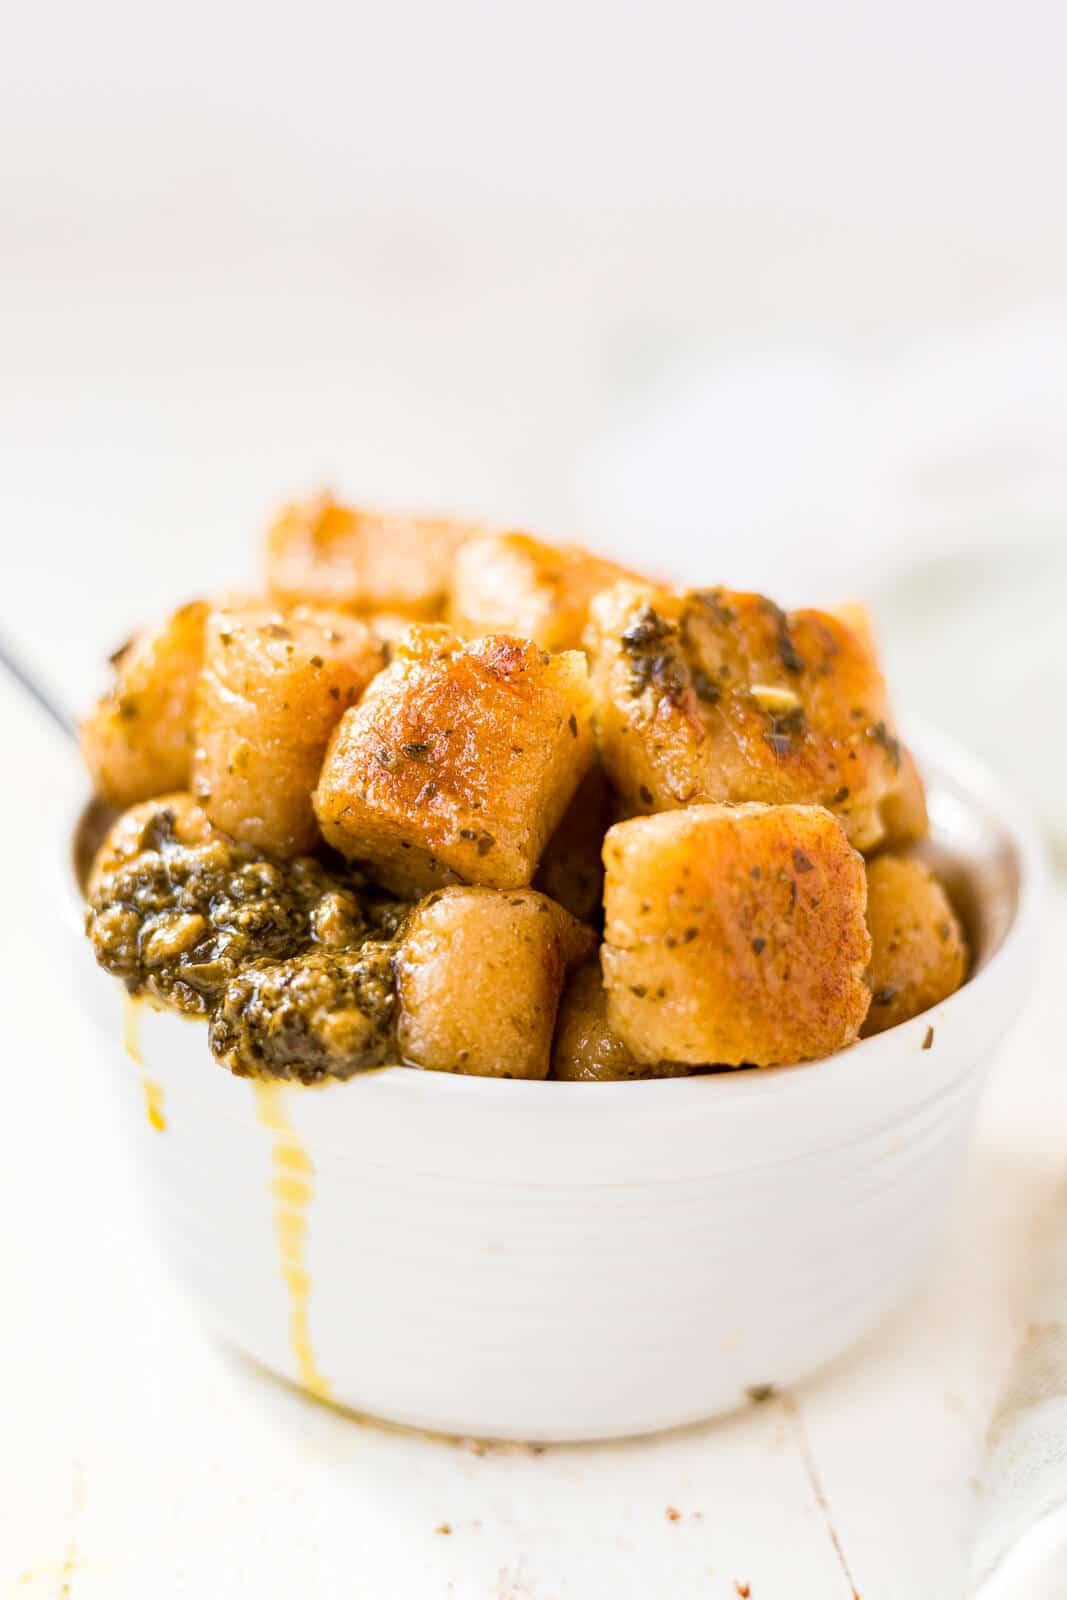 homemade cauliflower gnocchi piled into a white bowl tossed in pesto